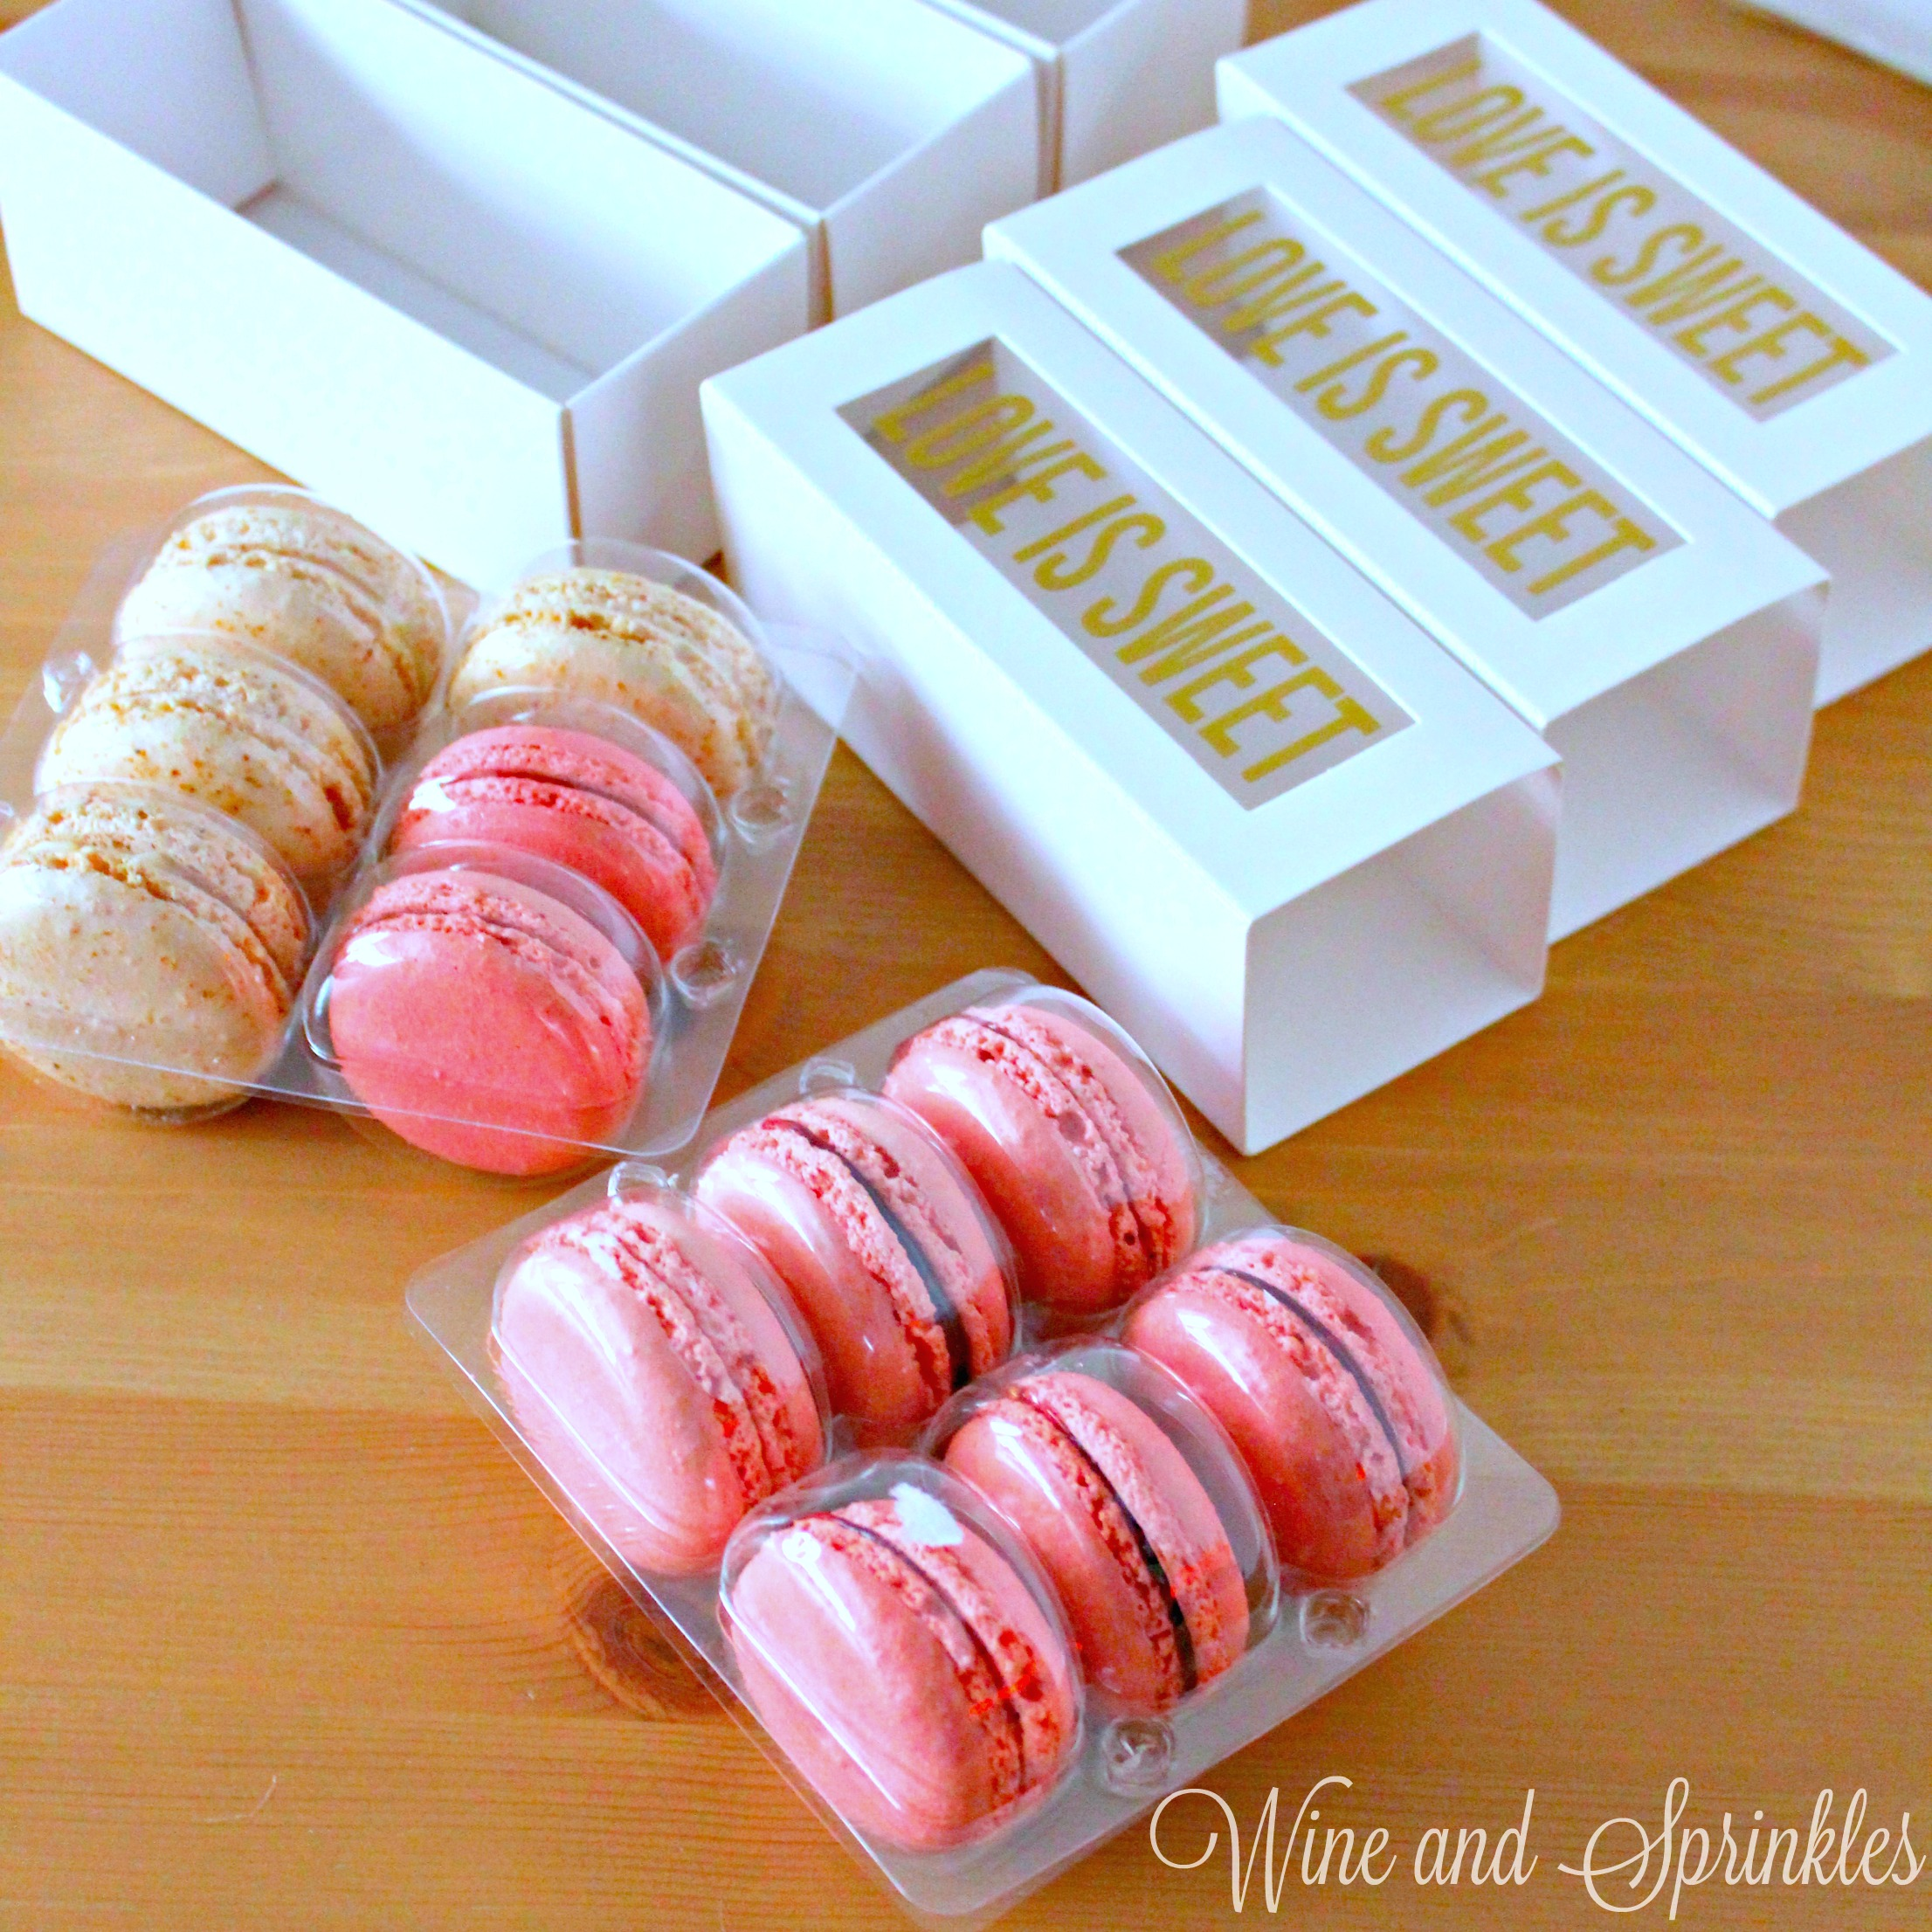 16. Macaroon Supplies with text.jpg